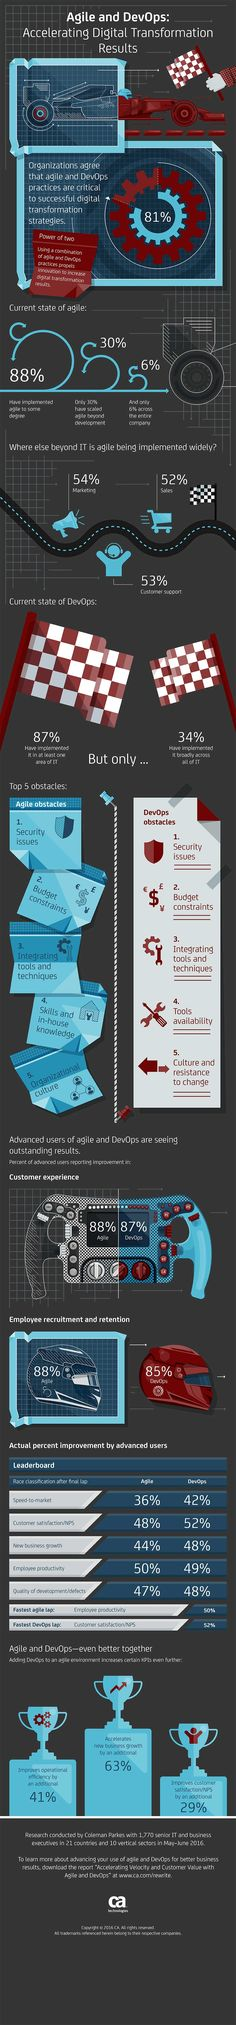 This infographic from CA Technologies commissioned Coleman Parkes Research to survey 1,770 senior business and IT executives to examine how enterprises are leveraging agile and DevOps within their digital transformation programs and the impact these approaches are having on business performance.